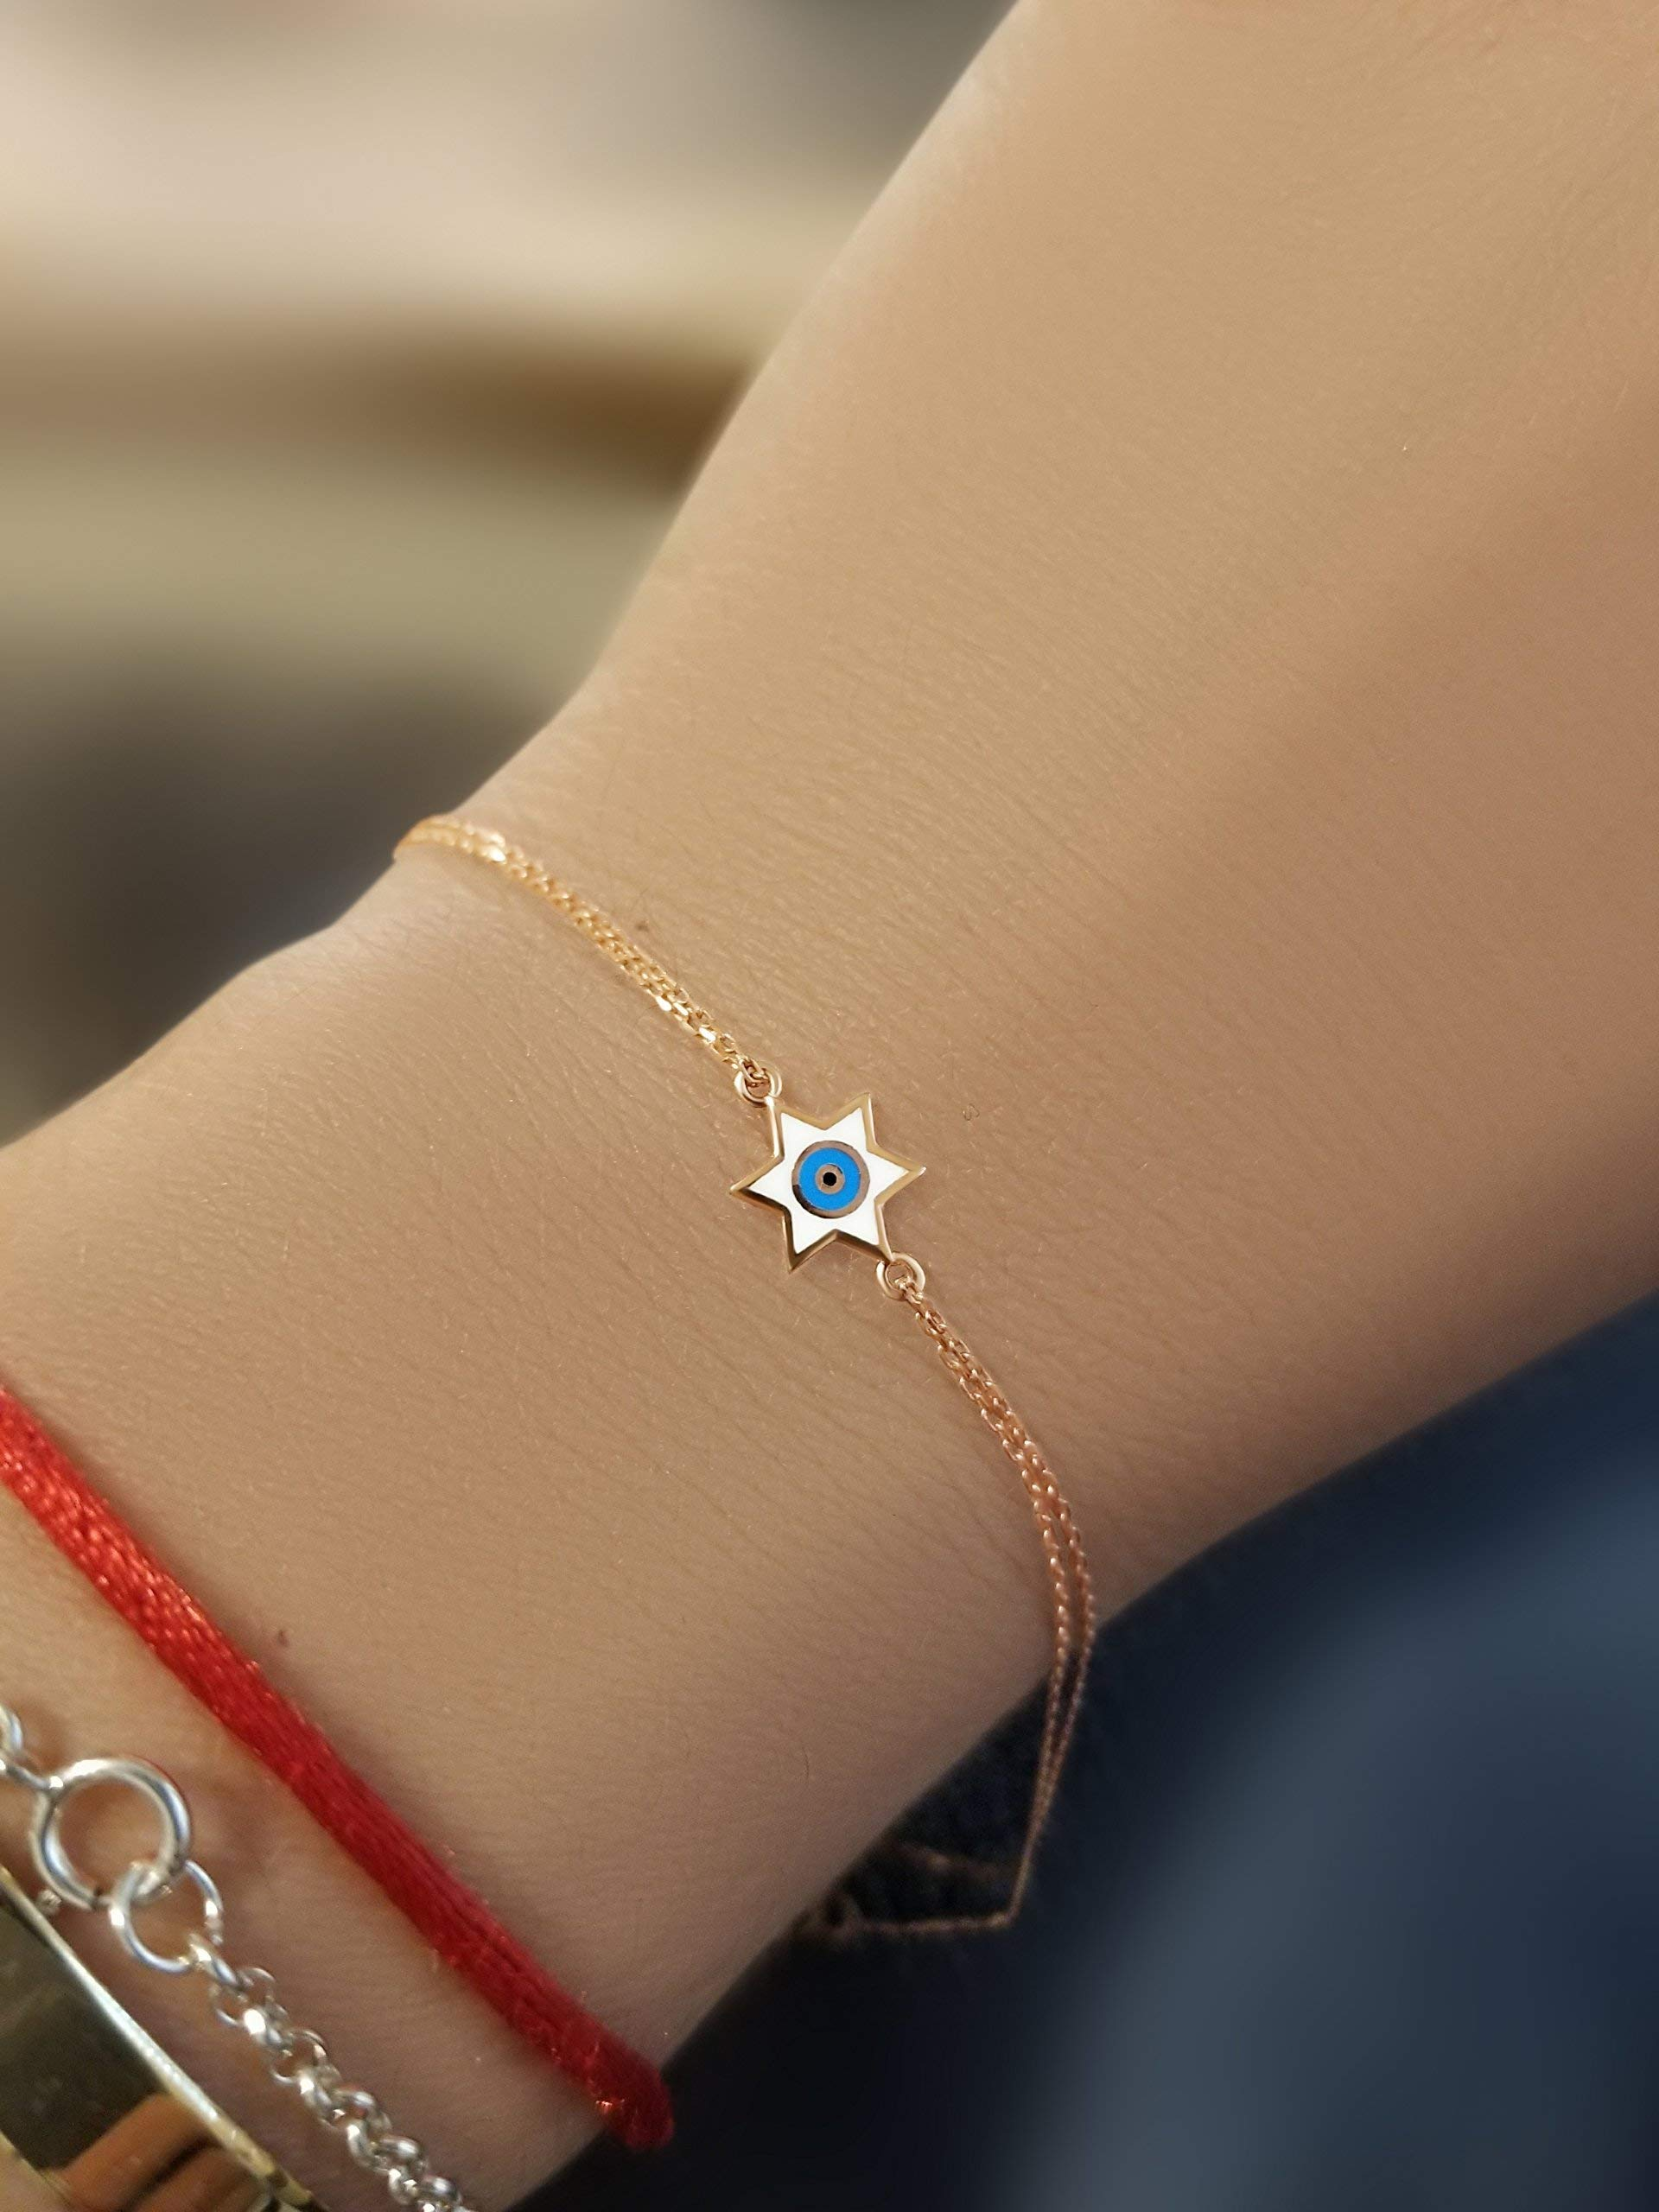 Jewish Star and Evil Eye Bracelet in Rose Gold To Guide You + Add Style + Beauty | Alef Bet Jewelry